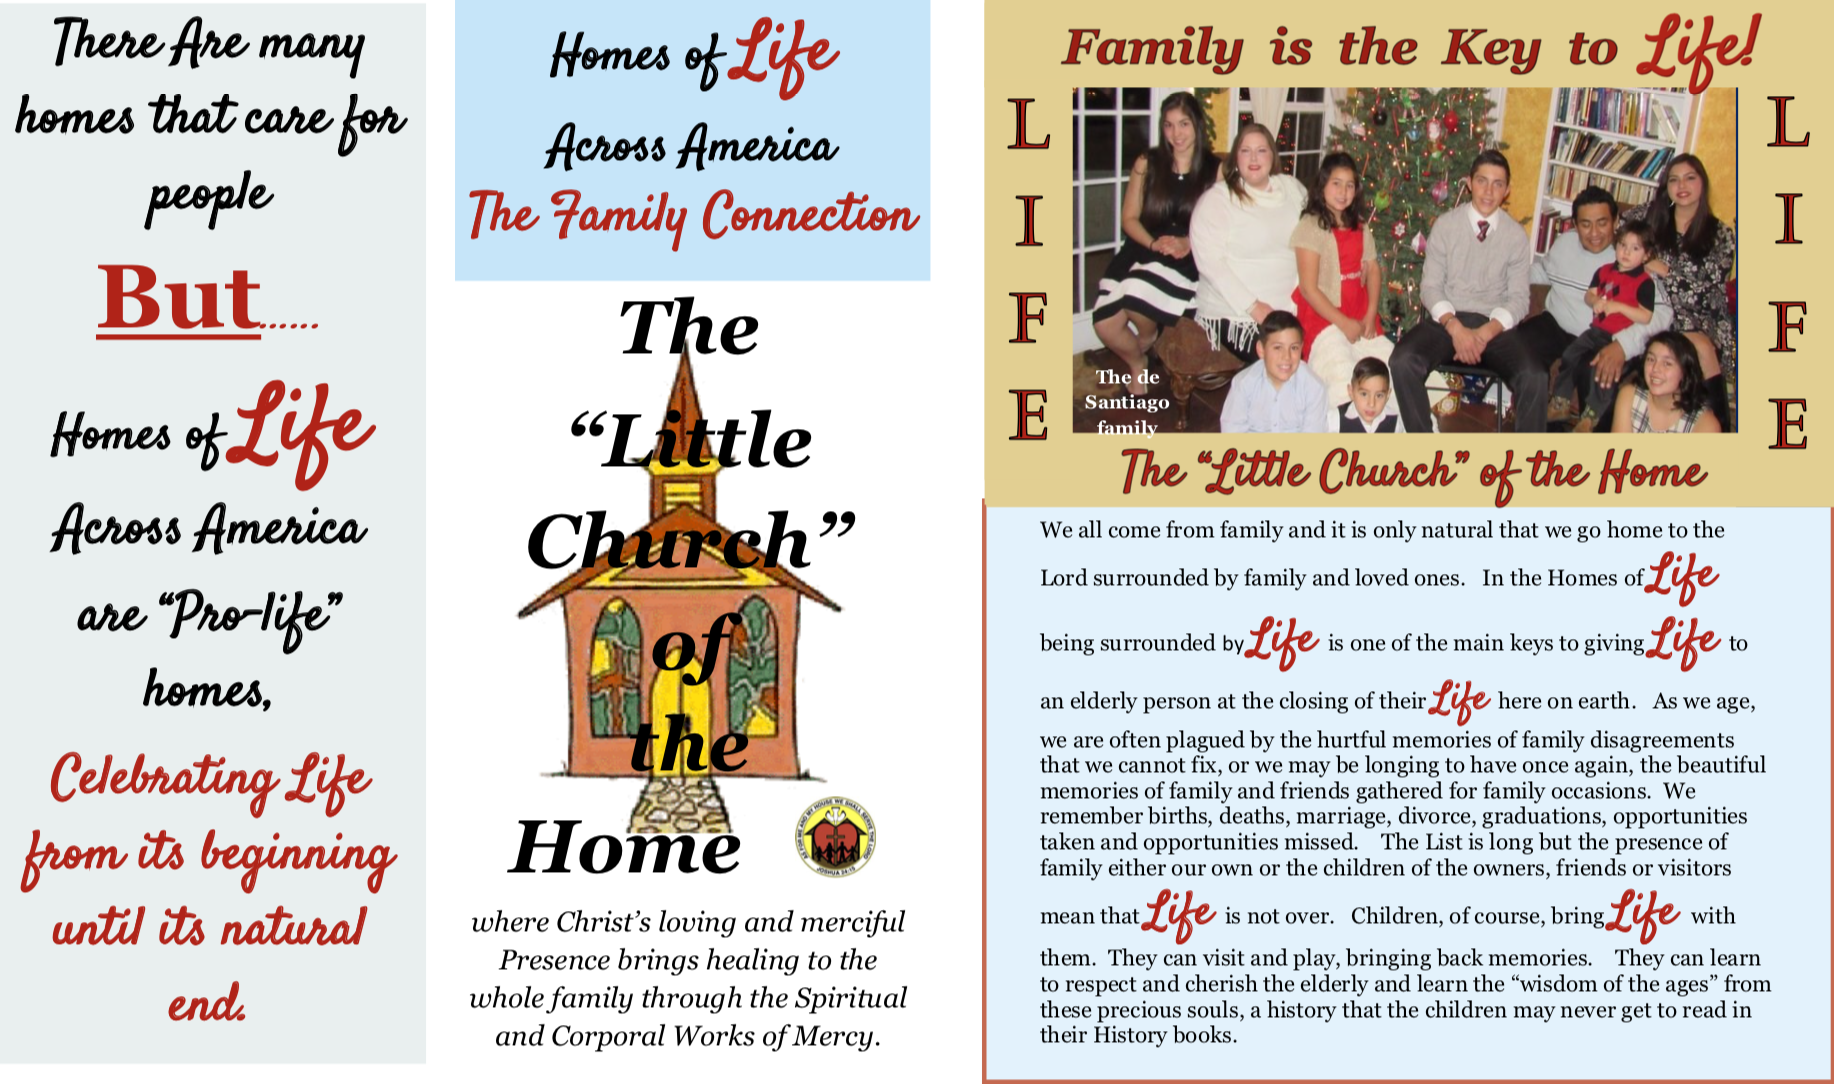 Family key to life Brochure